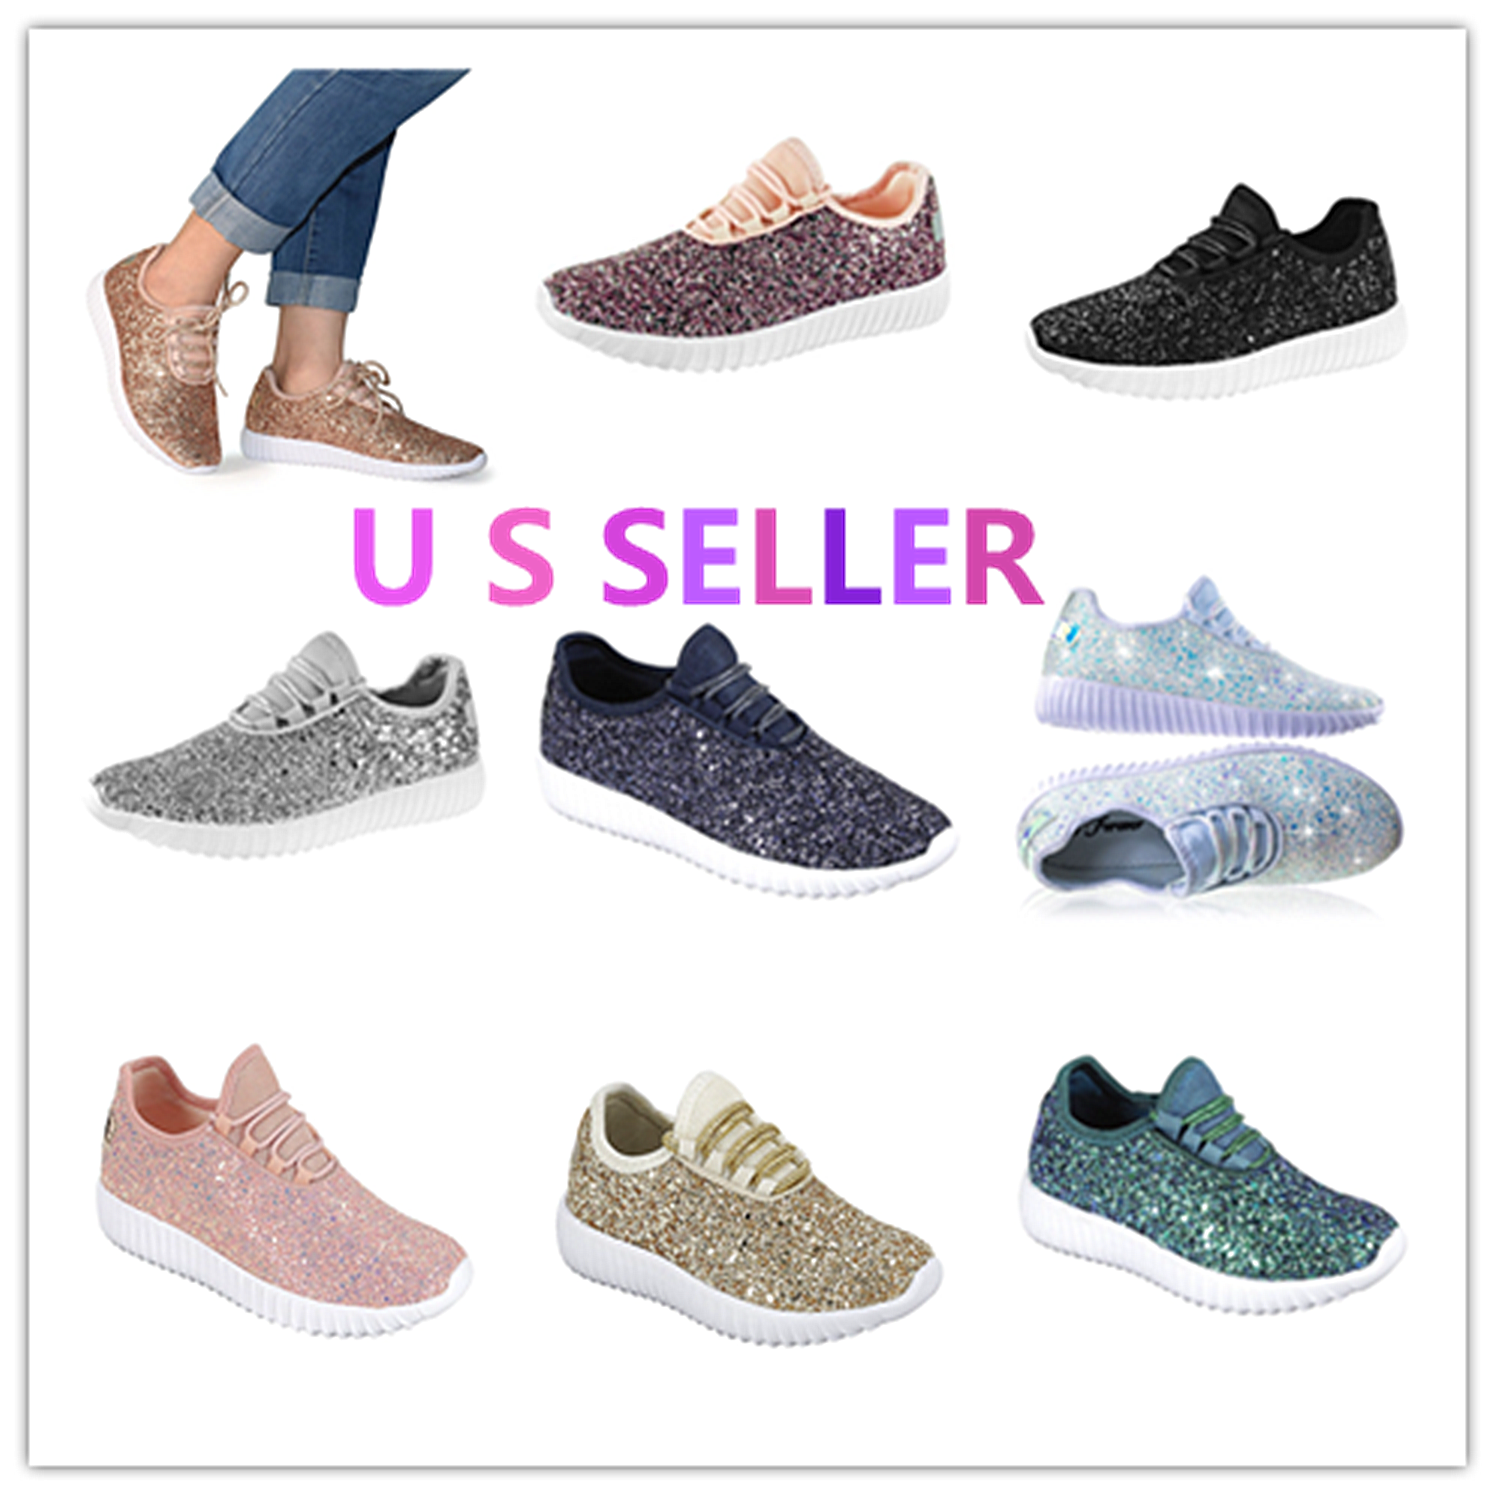 Electronics, Cars, Fashion, Collectibles, Coupons. - eBay Fashion girls footwear athletic